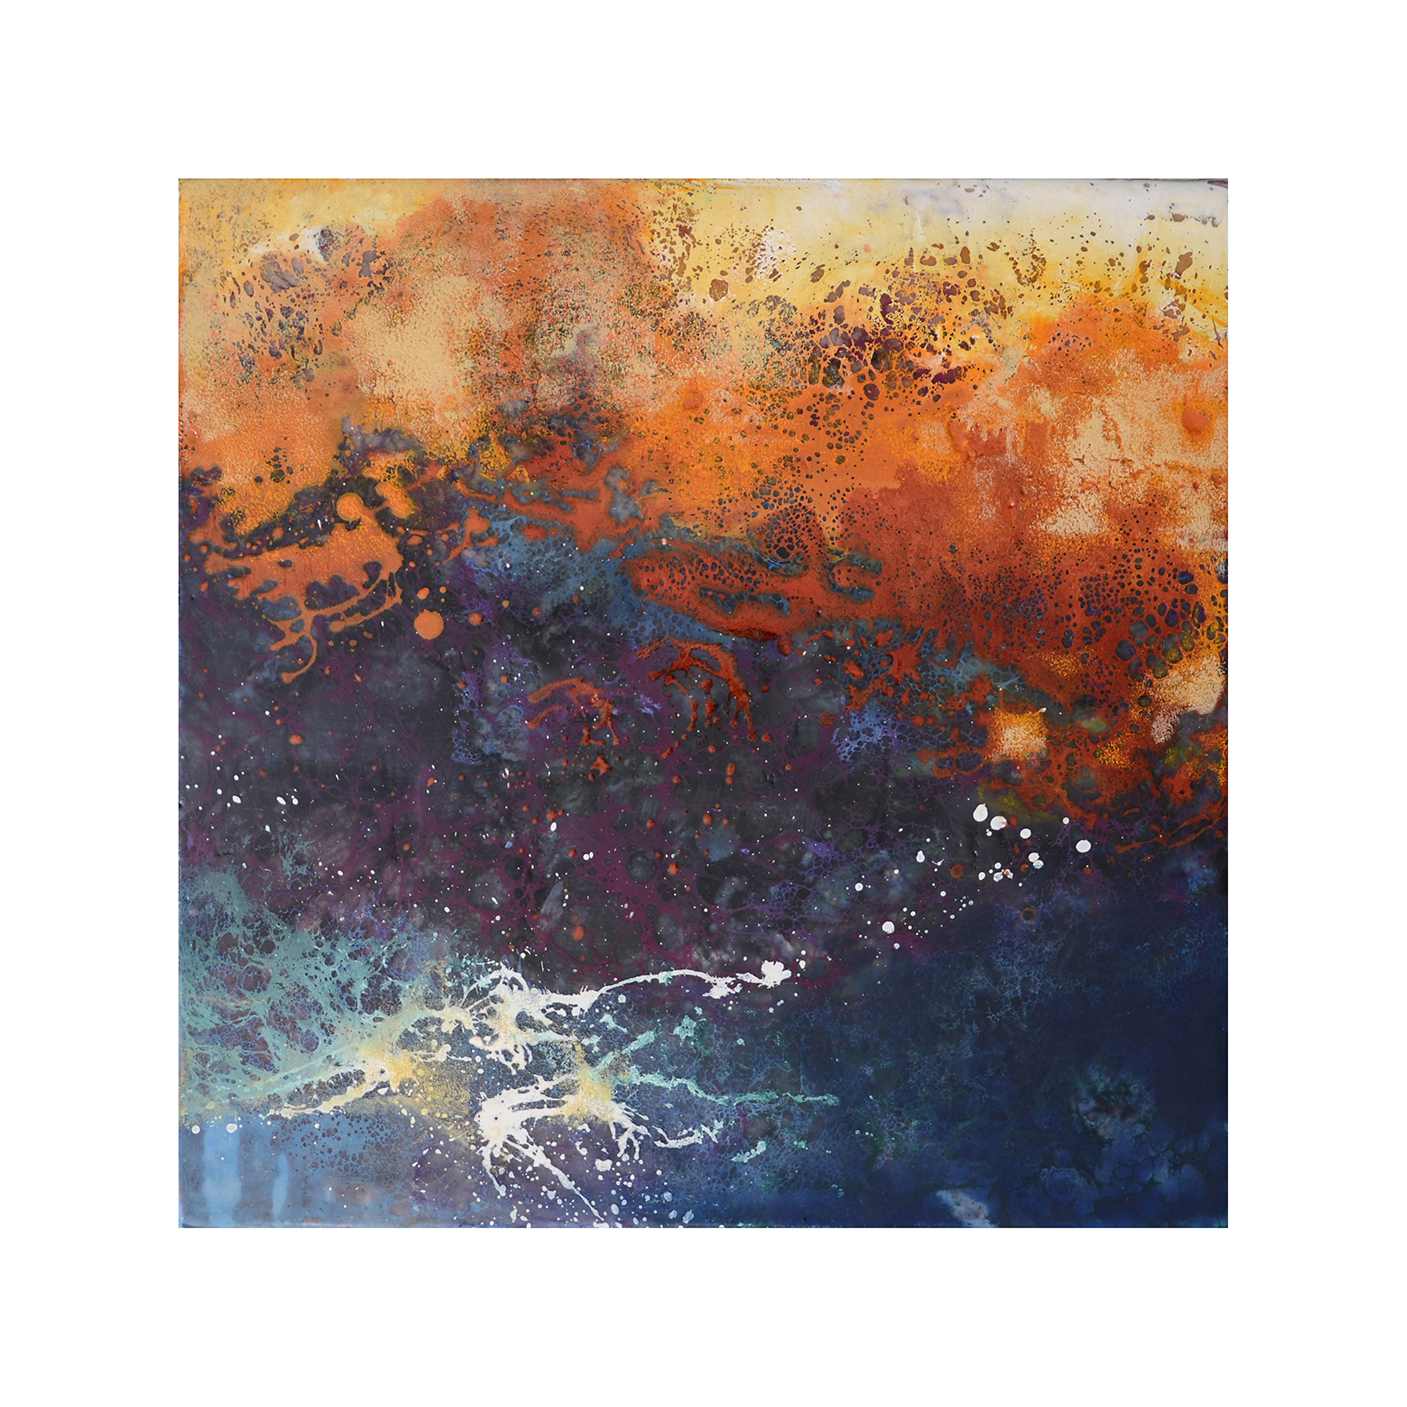 Evening Comes 1   12 x 12  Encaustic on Panel  $300